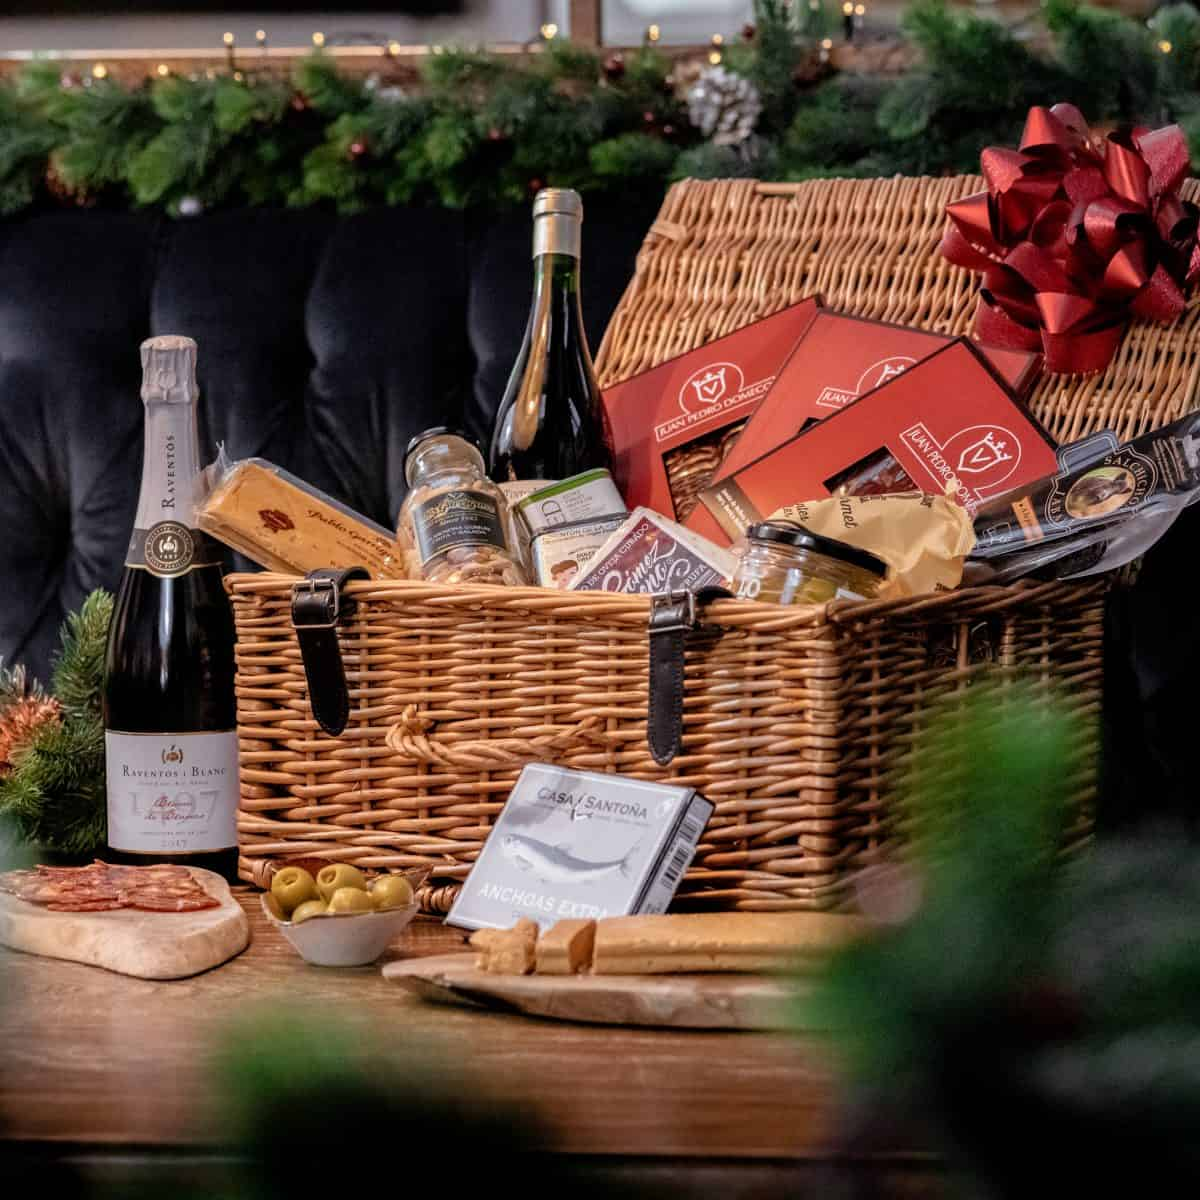 Iberica at home Food & Drink Christmas Gift Guide